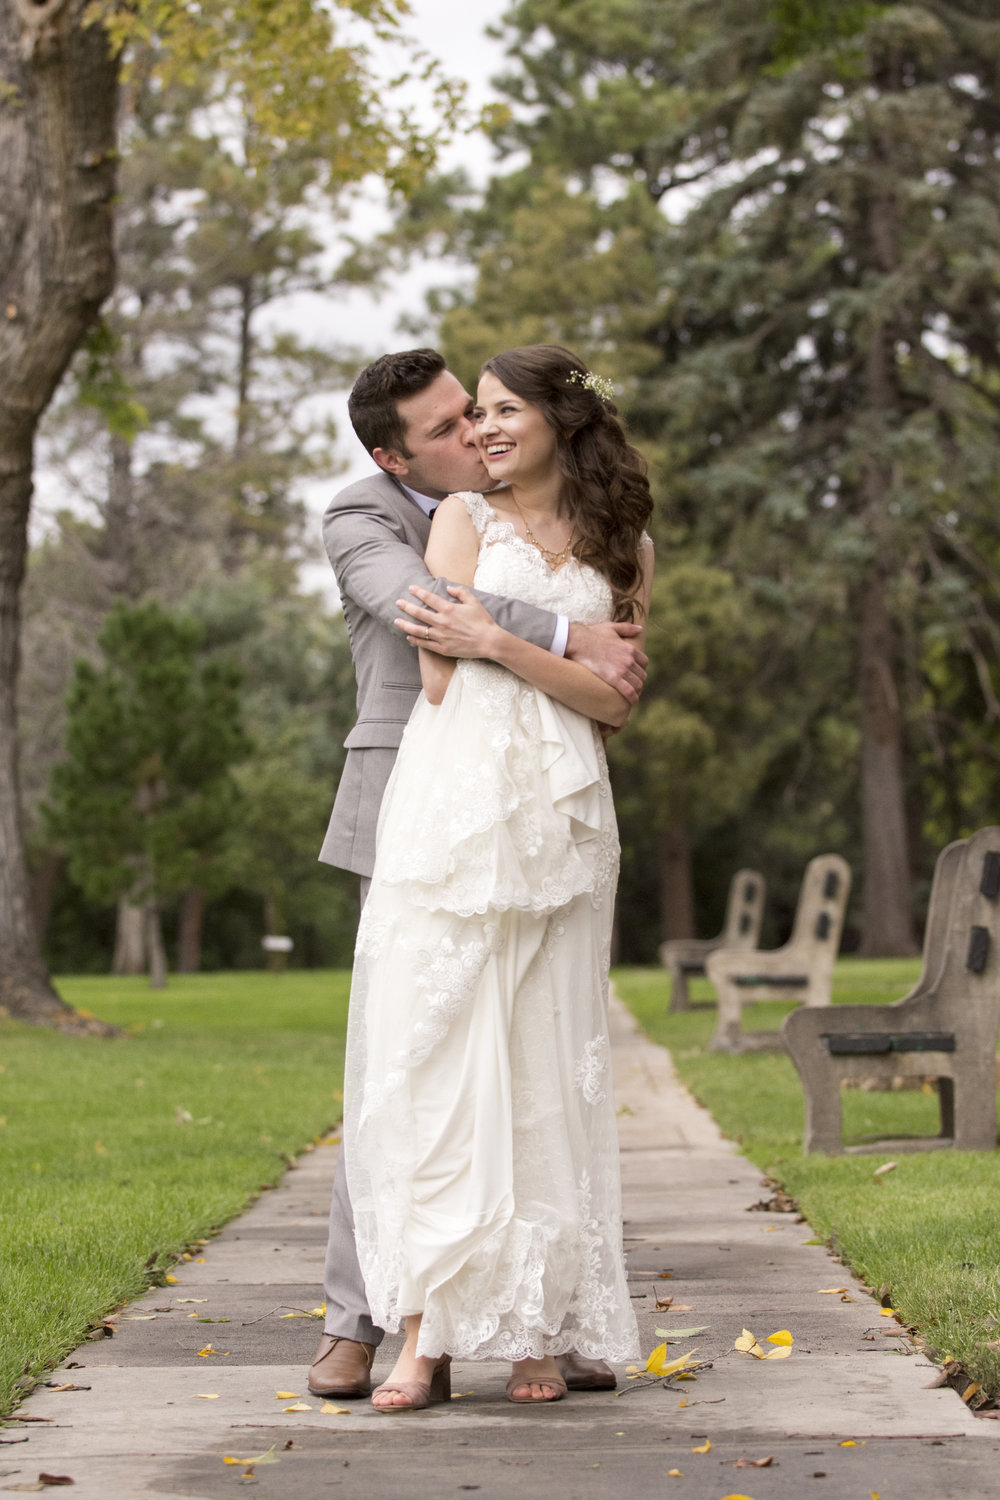 Bethany + Jonathan's Colorado Springs Wedding